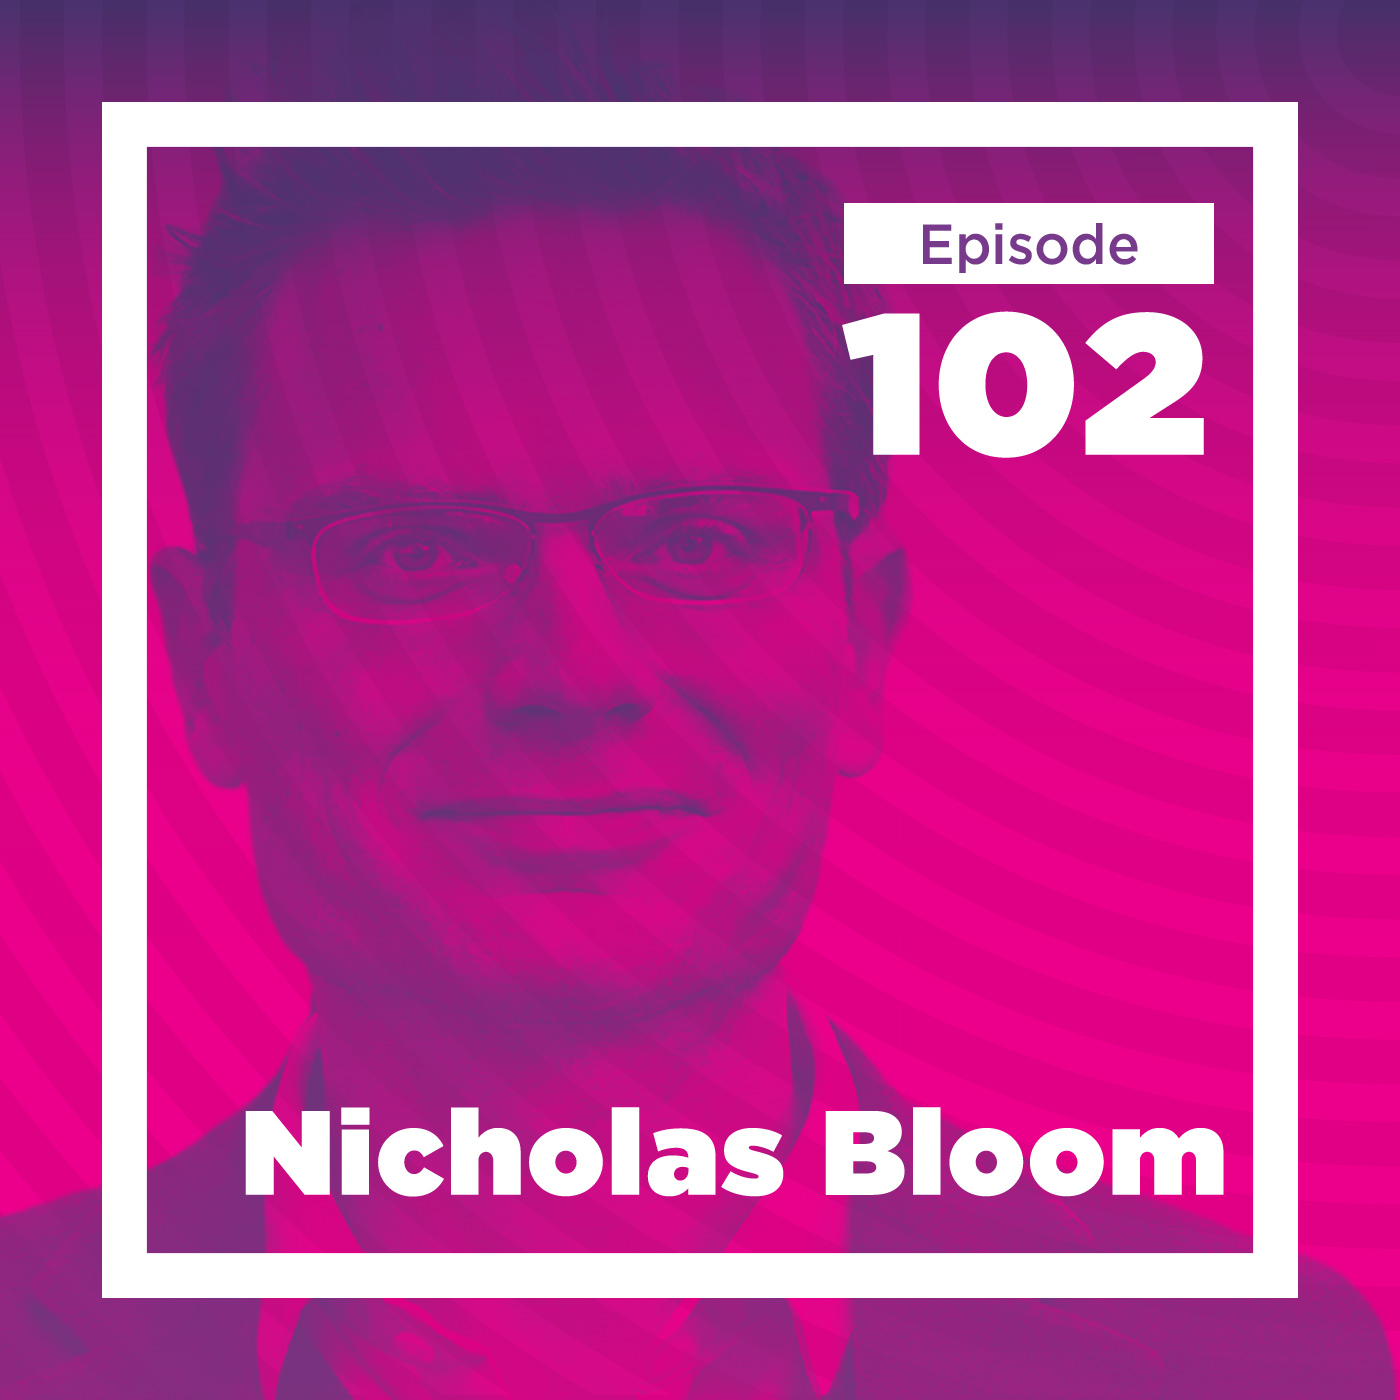 Nicholas Bloom on Management, Productivity, and Scientific Progress